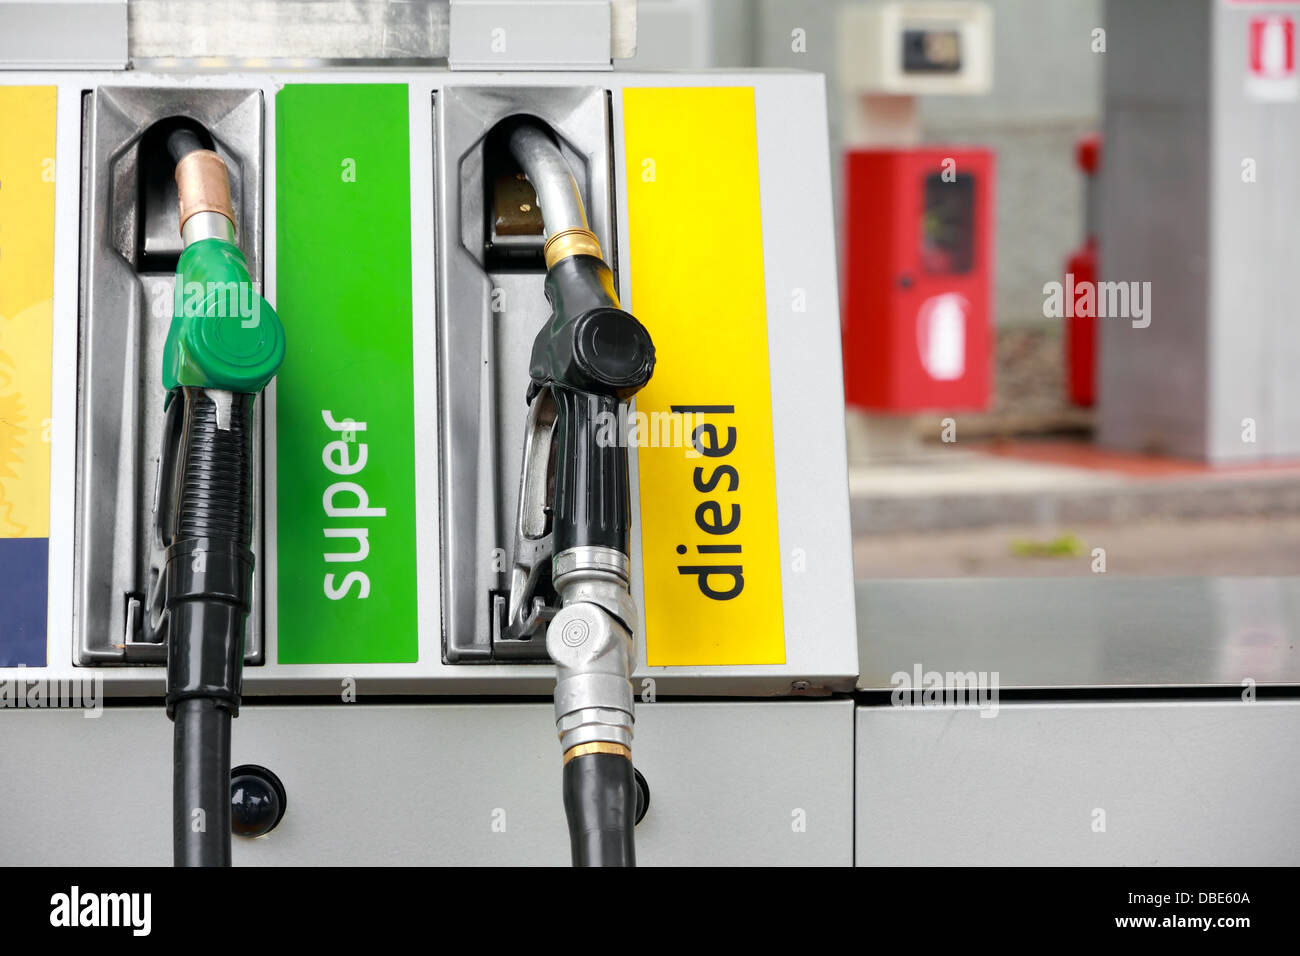 Pump nozzles in gas station - Stock Image